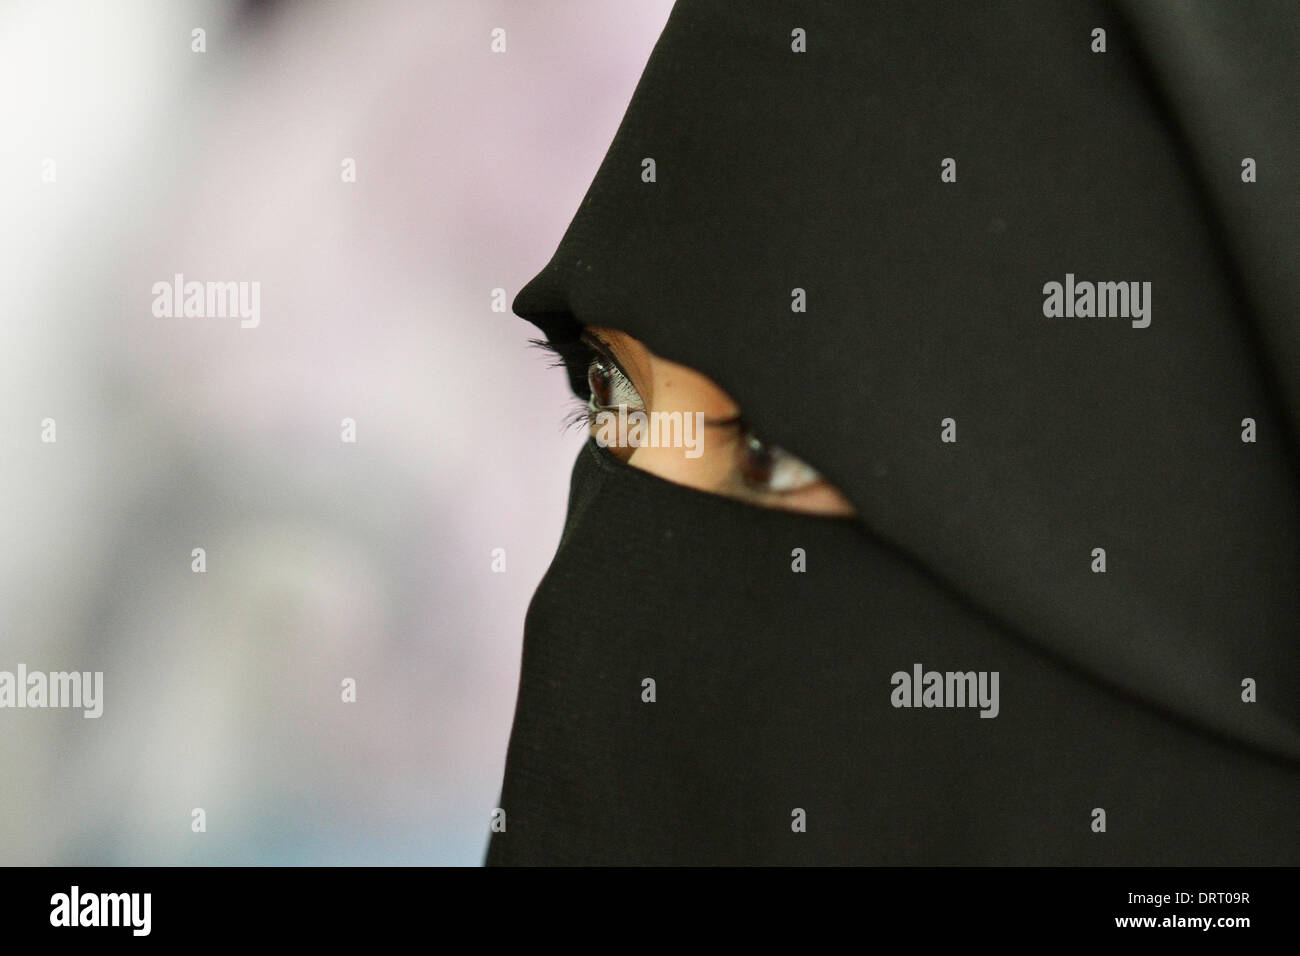 Quezon, Philippines. 1st Feb, 2014. A Muslim woman wearing a full face Hijab attends the World Hijad day program Stock Foto